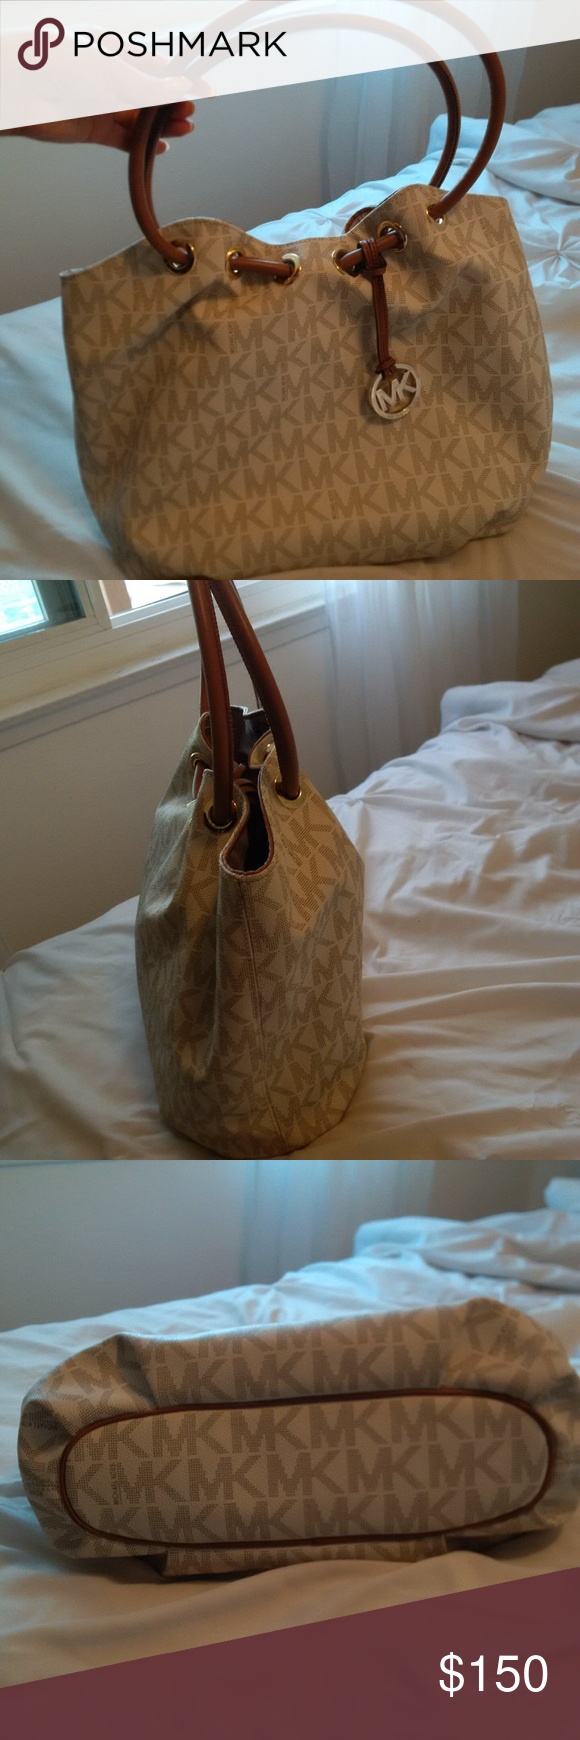 MICHAEL KORS shoulder and/or hand tote. 18' by 13' Michael Kors Bags Totes